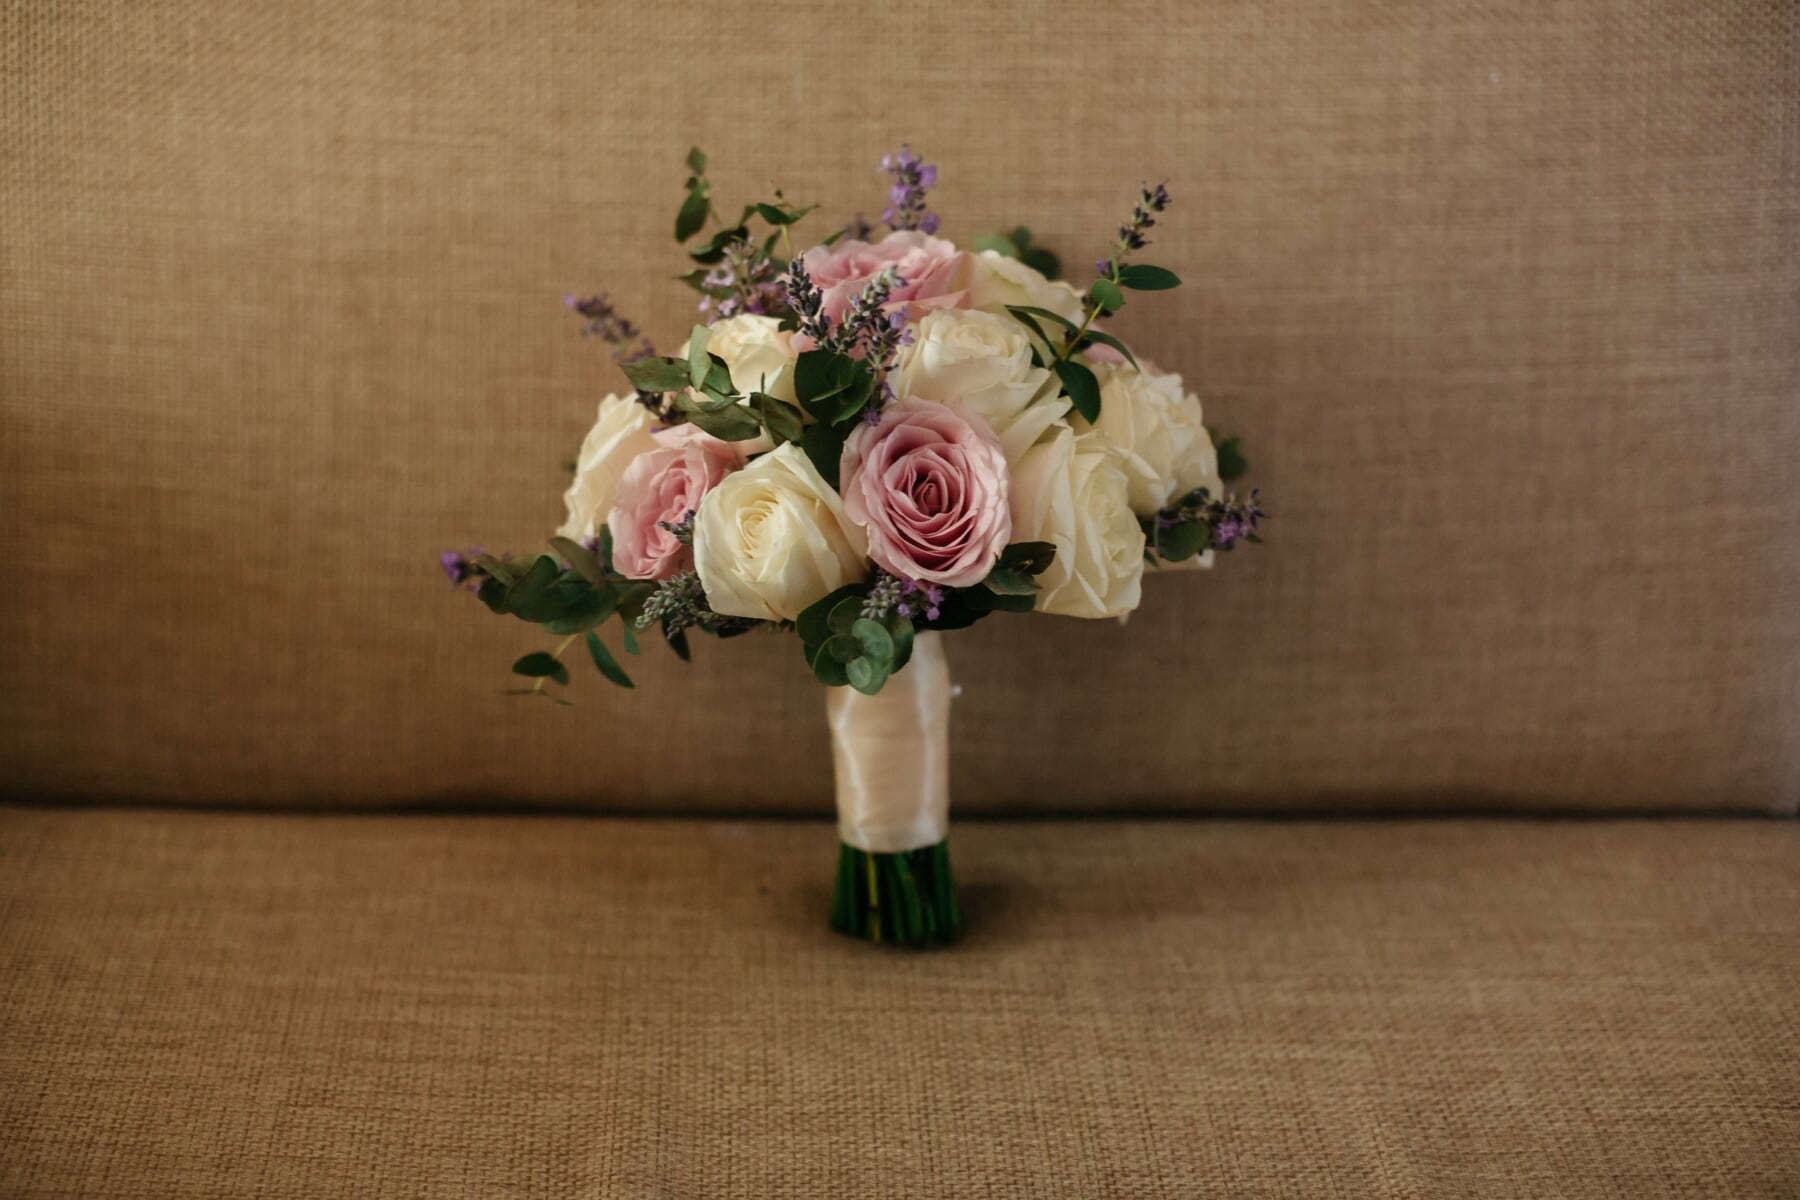 bouquet, love, rose, decoration, arrangement, flower, romance, still life, gift, leaf